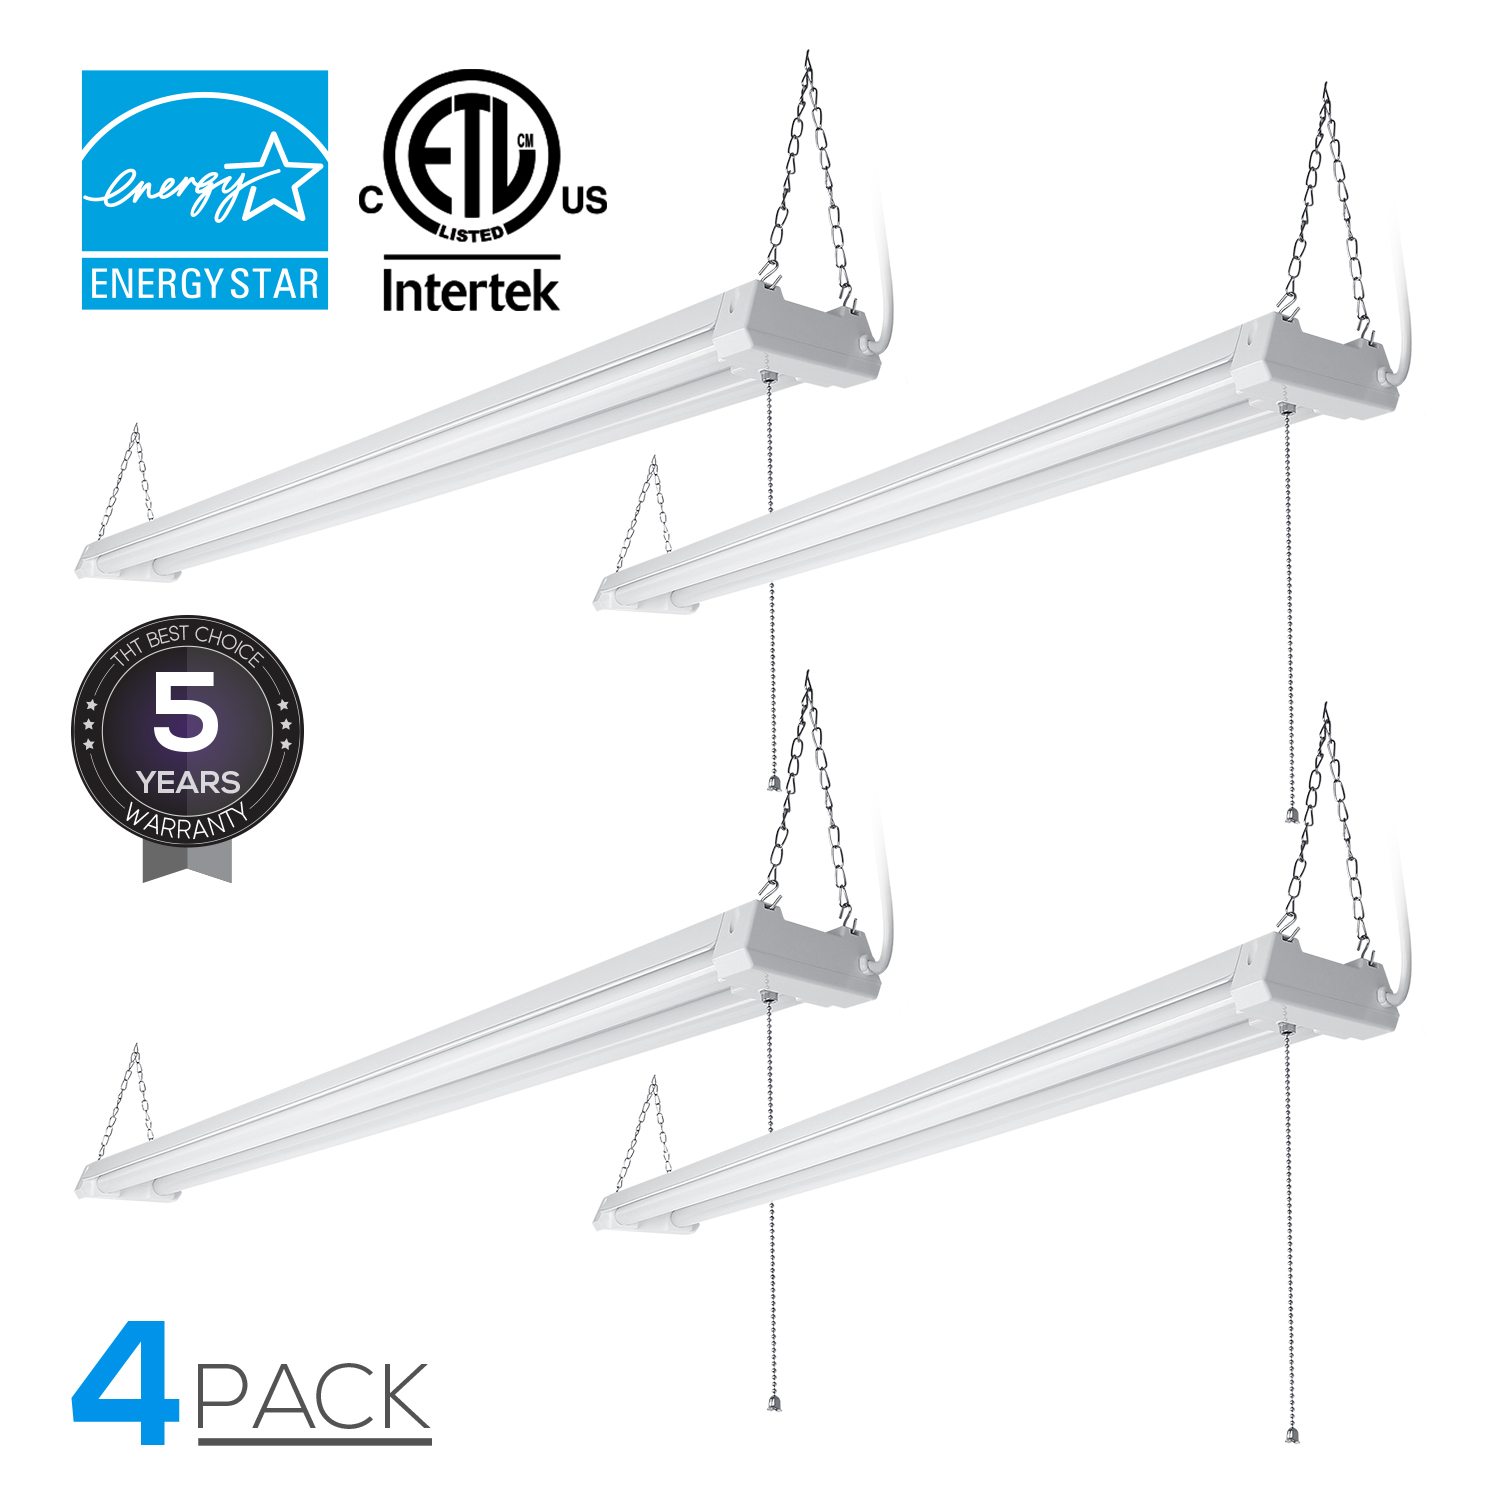 4-PACK 4ft 40W Linkable LED Utility Shop Light, 4100 Lumens, ENERGY STAR & ETL Listed, Double Integrated LED Ceiling Fixture, 4000K Cool White, Pull Cord Switch, Garage/Basement/Workshop